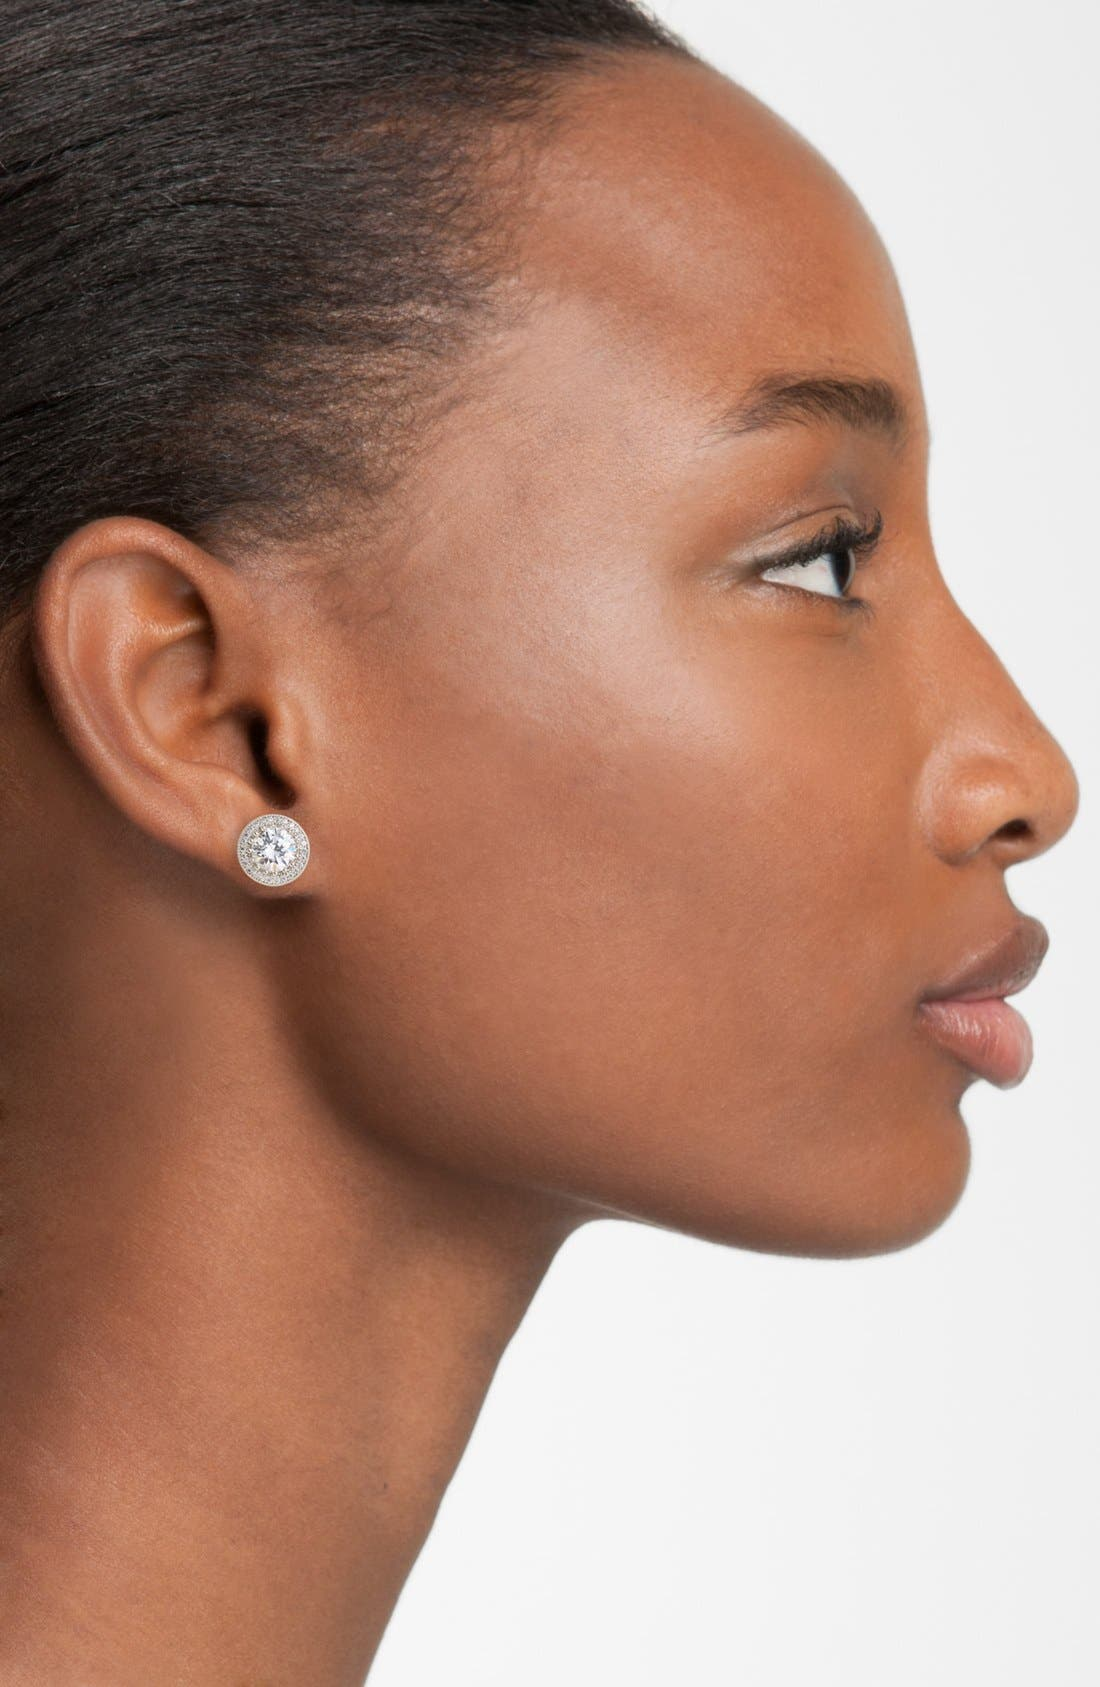 'Lassaire' Stud Earrings,                             Alternate thumbnail 2, color,                             SILVER/ CLEAR